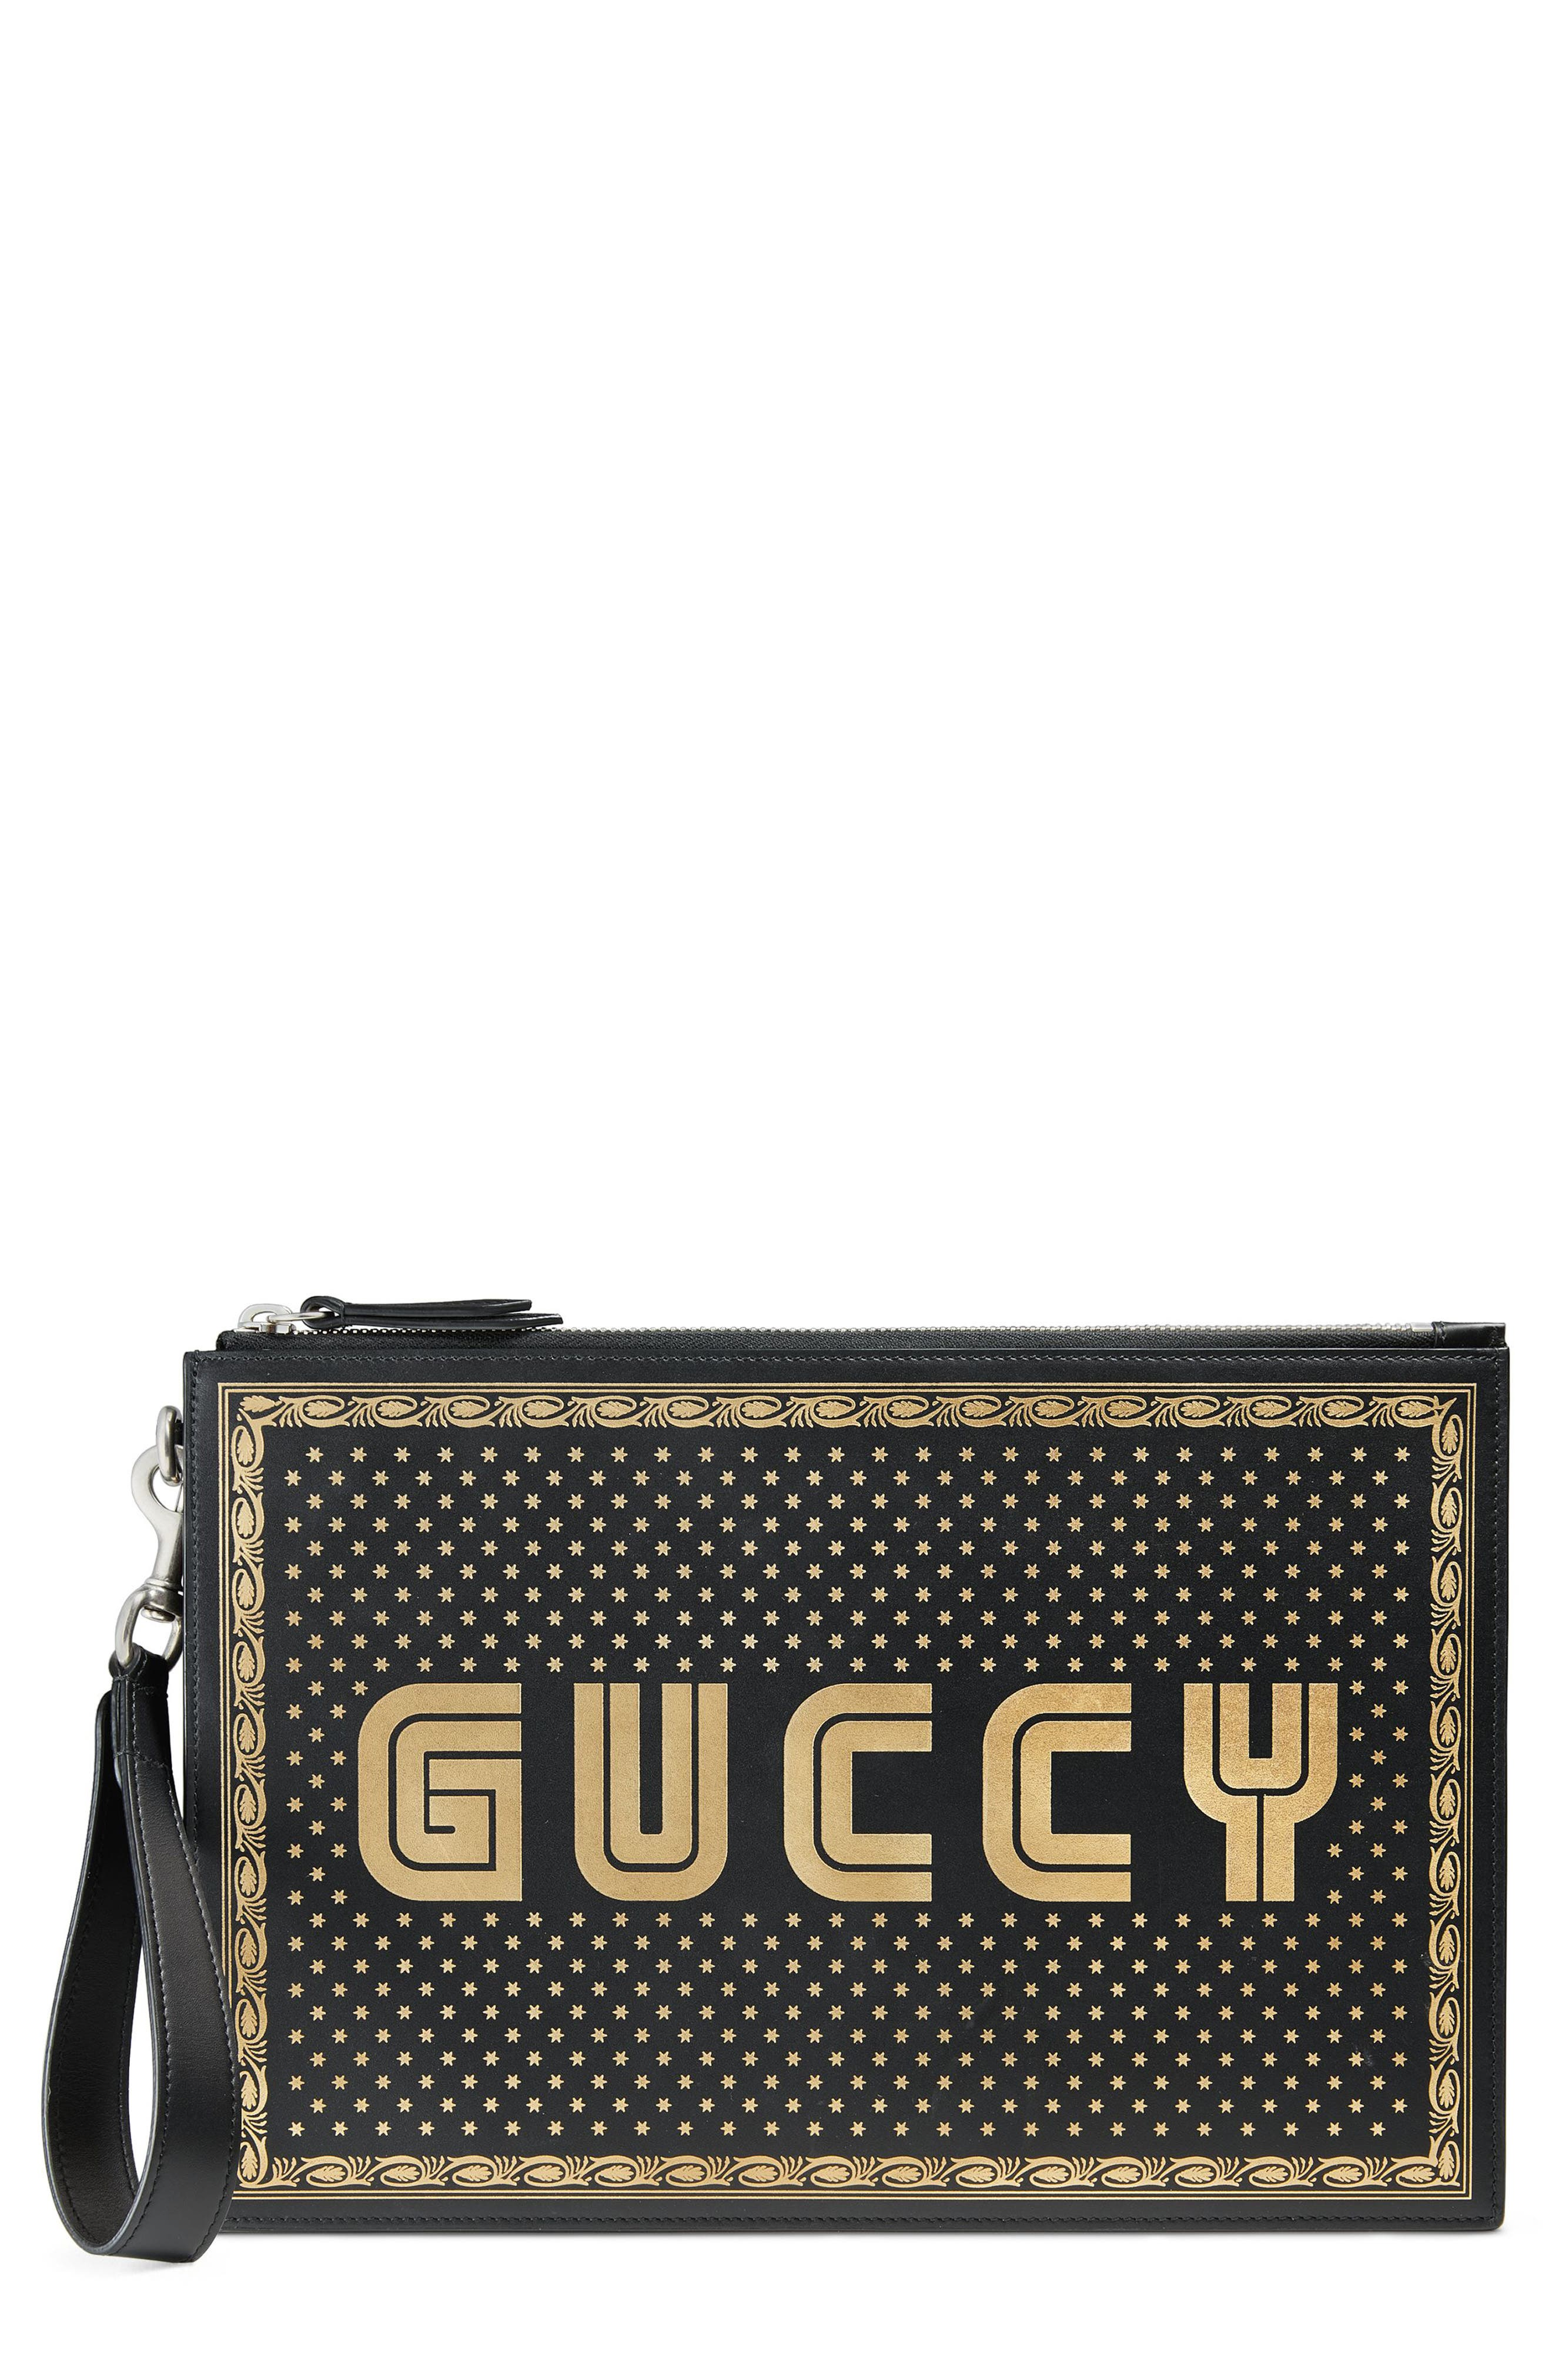 GUCCI, Guccy Moon & Stars Leather Zip Pouch, Main thumbnail 1, color, NERO/ ORO